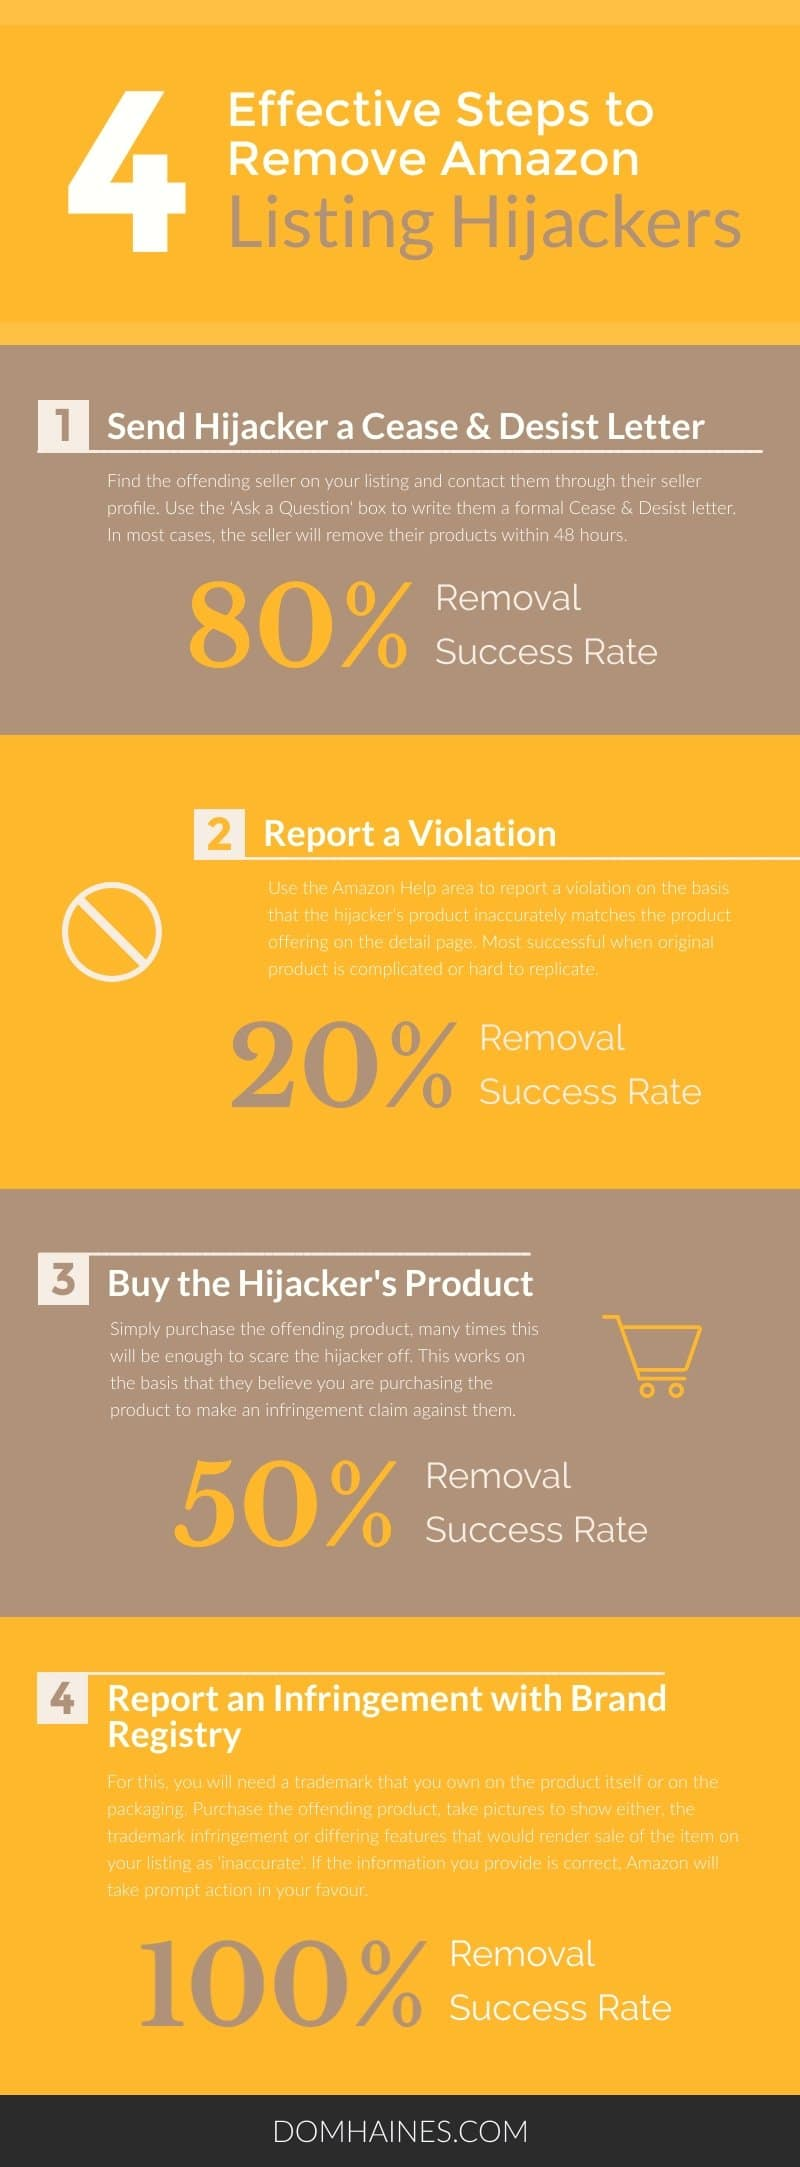 Amazon Remove Hijackers Steps Infographic